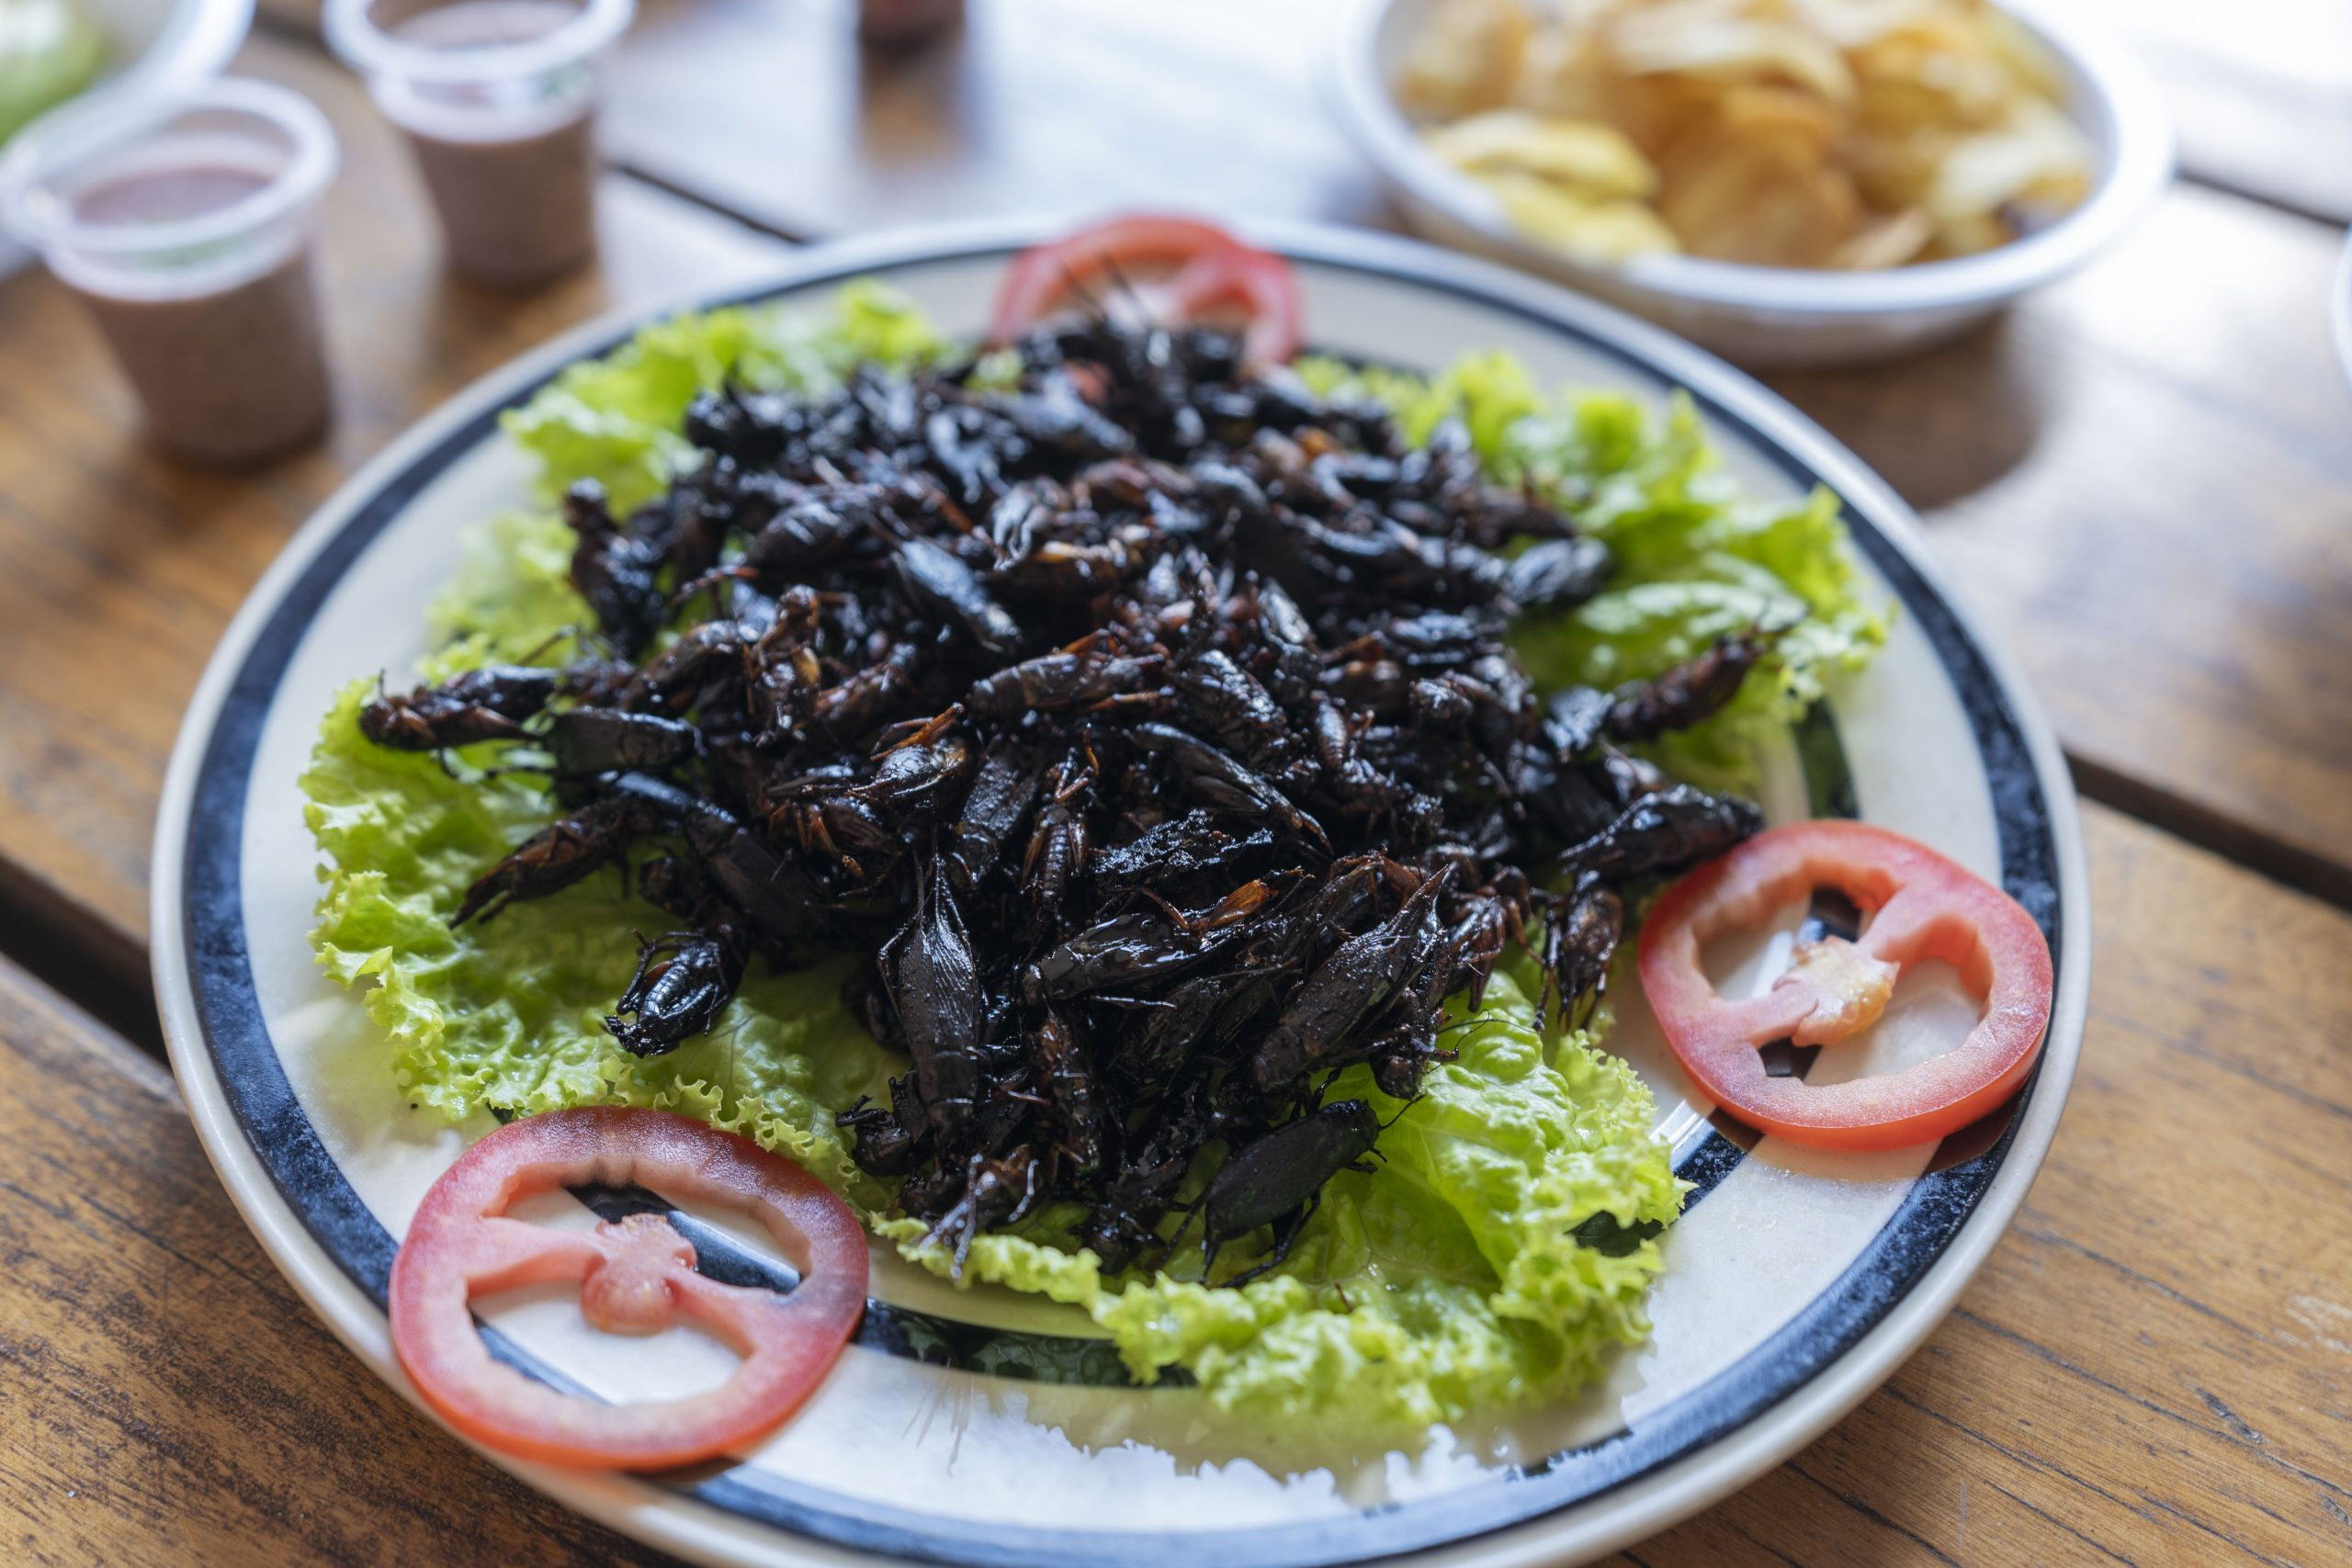 Fried cricket hors d'oeuvres are served to guests at Valala Farm. Many think the farming of protein-rich insects like crickets could be a viable way of feeding the world's ever-growing population, as well as conserving wildlife.